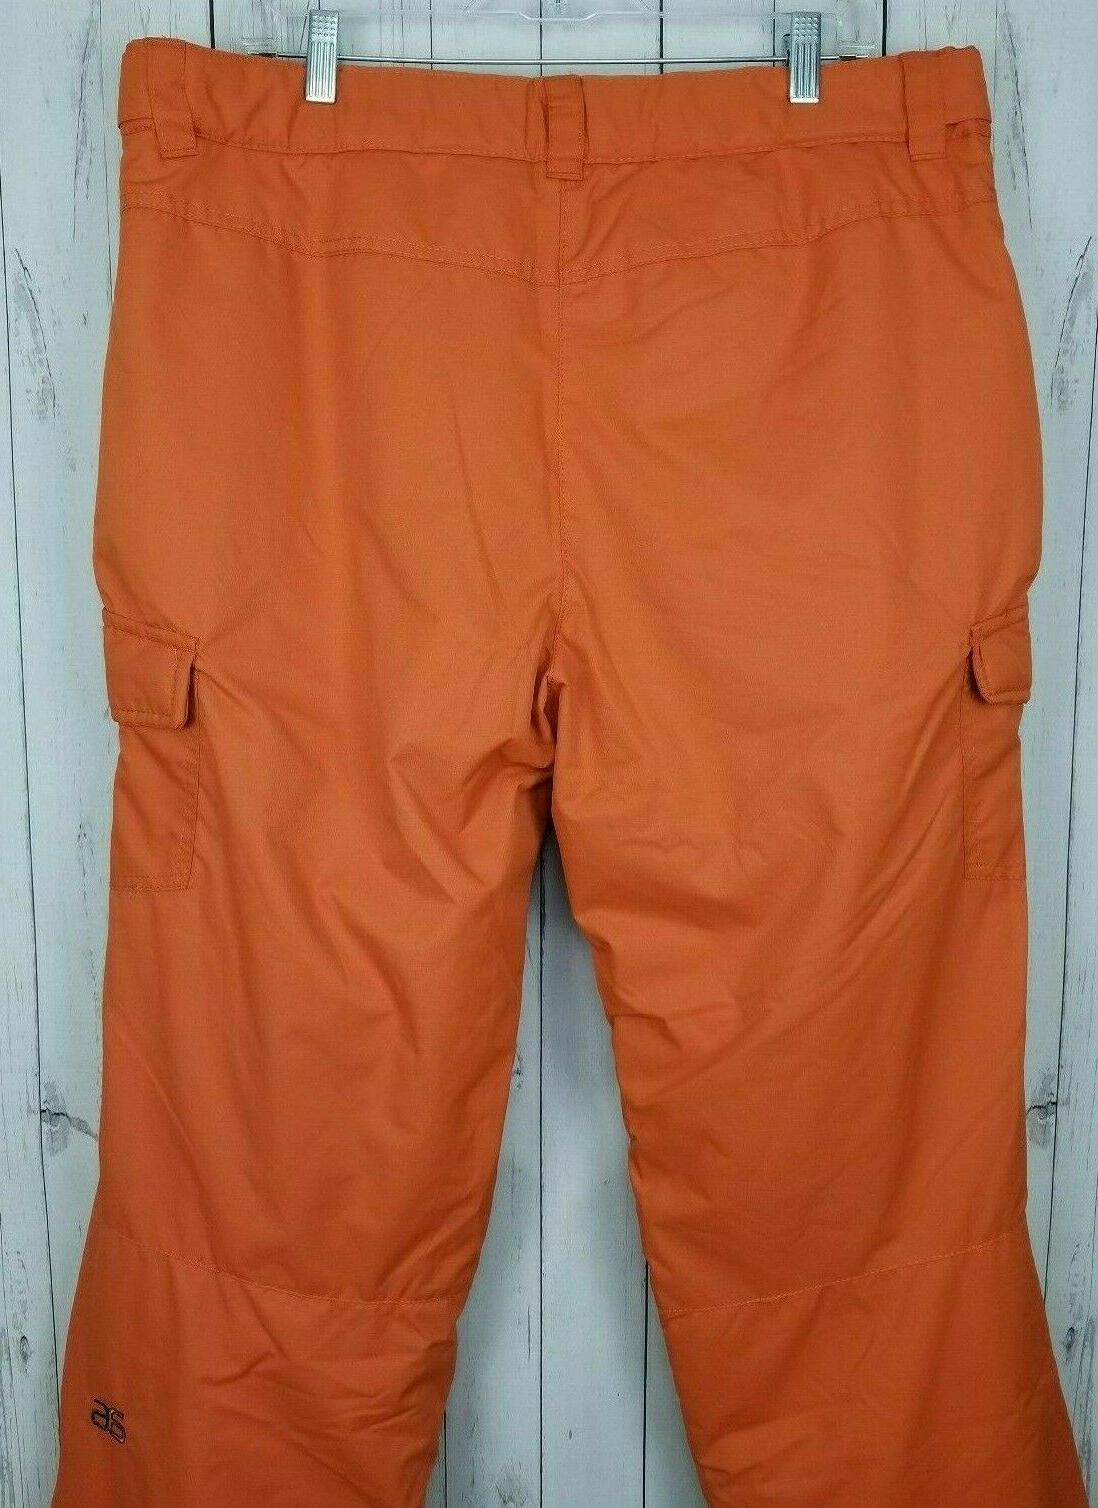 NWT Sports Cargo Pants Orange Burnt Ginger